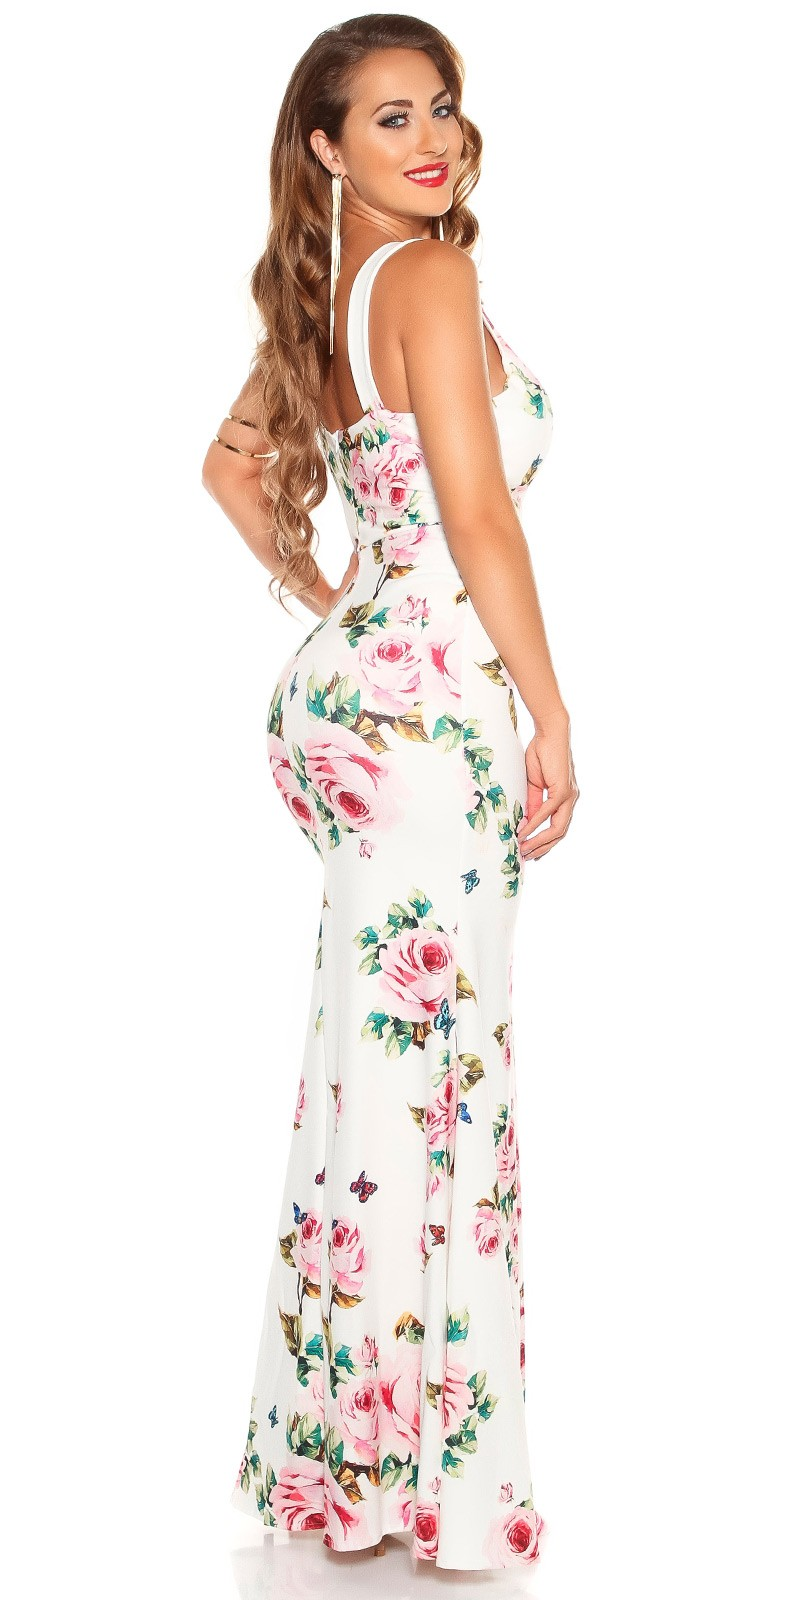 0740fbf2ccfc aaMaxidress with  Flower-Print  Color WHITE Size Einheitsgroesse 0000K2855 WEISS 18